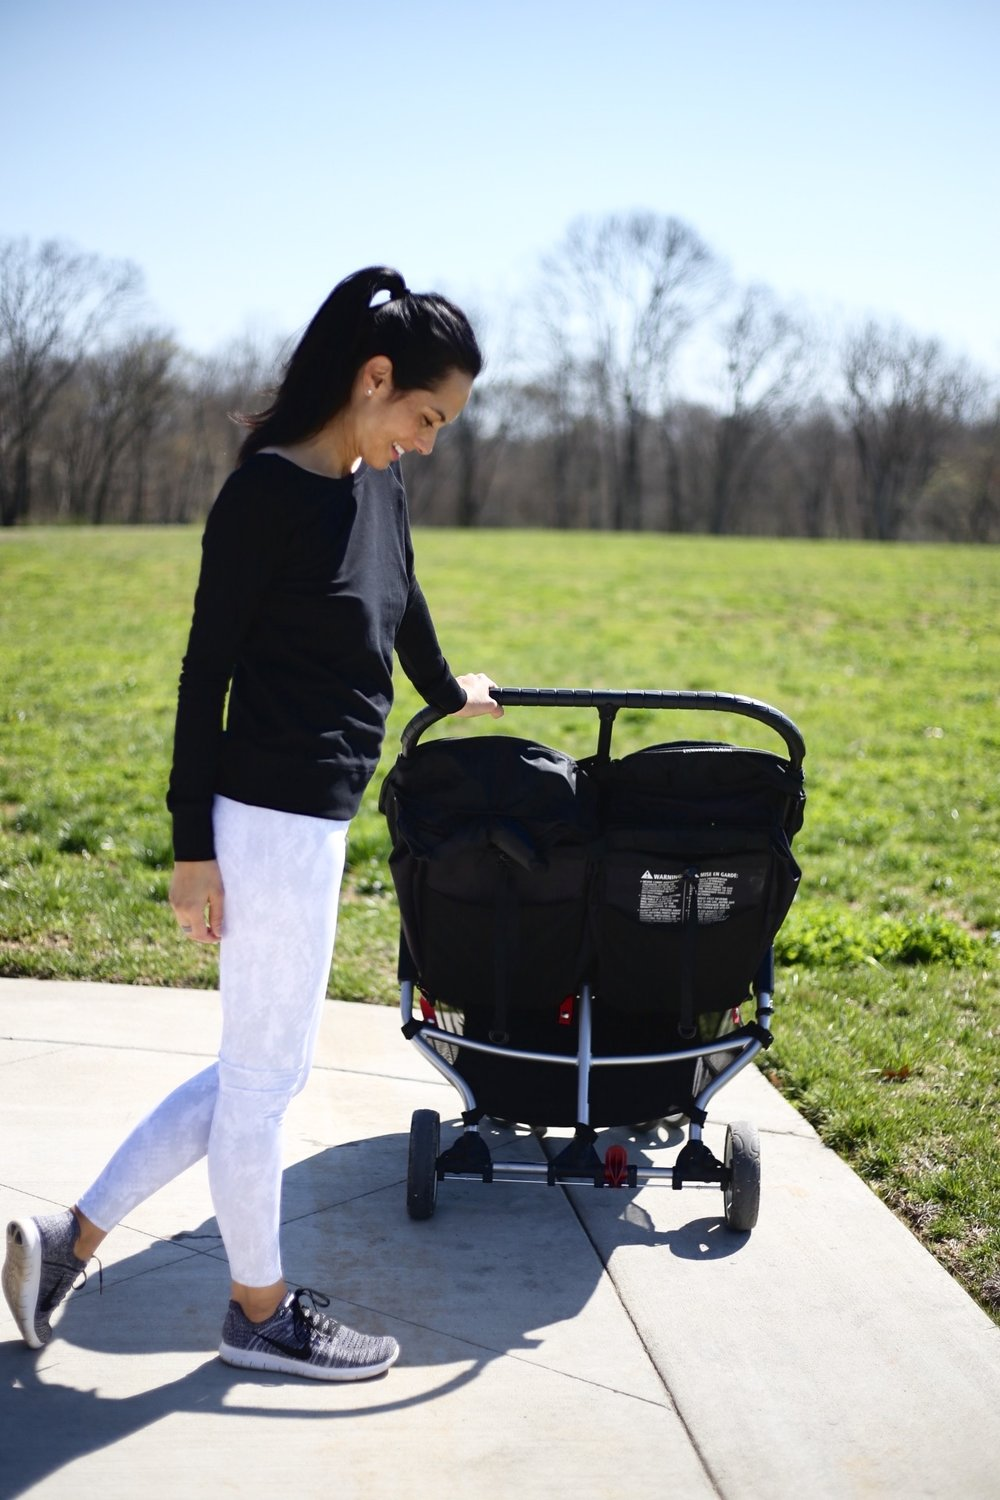 |  Alo leggings  |  Nike sneakers  | Zella top similar  |   double stroller  | image: Sydney Clawson |